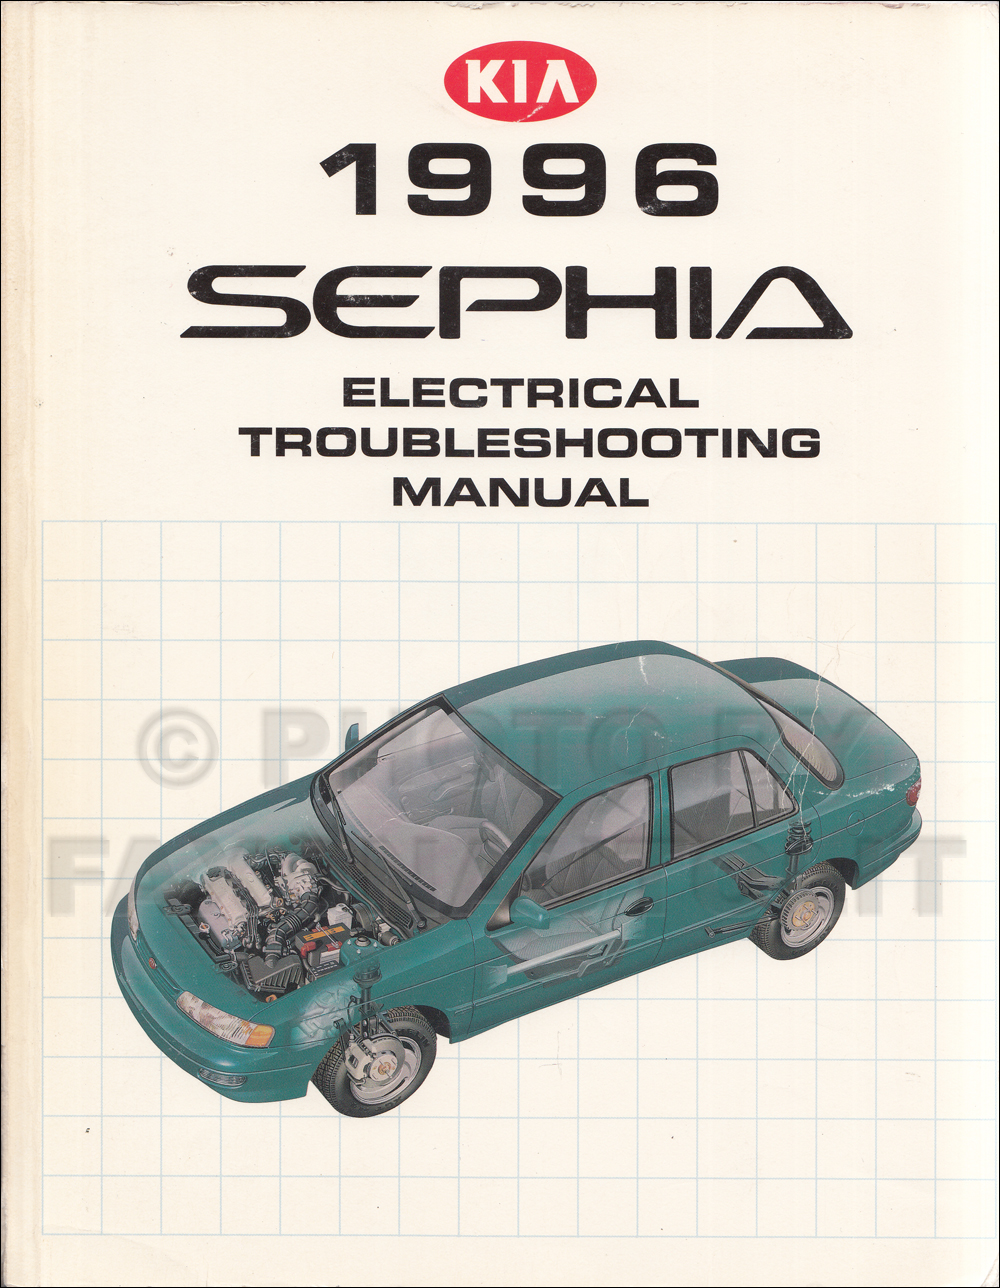 97 Kia Sephia Engine Diagram Wiring Library 2001 Fuse Box 1996 Electrical Troubleshooting Vacuum Routing Manual